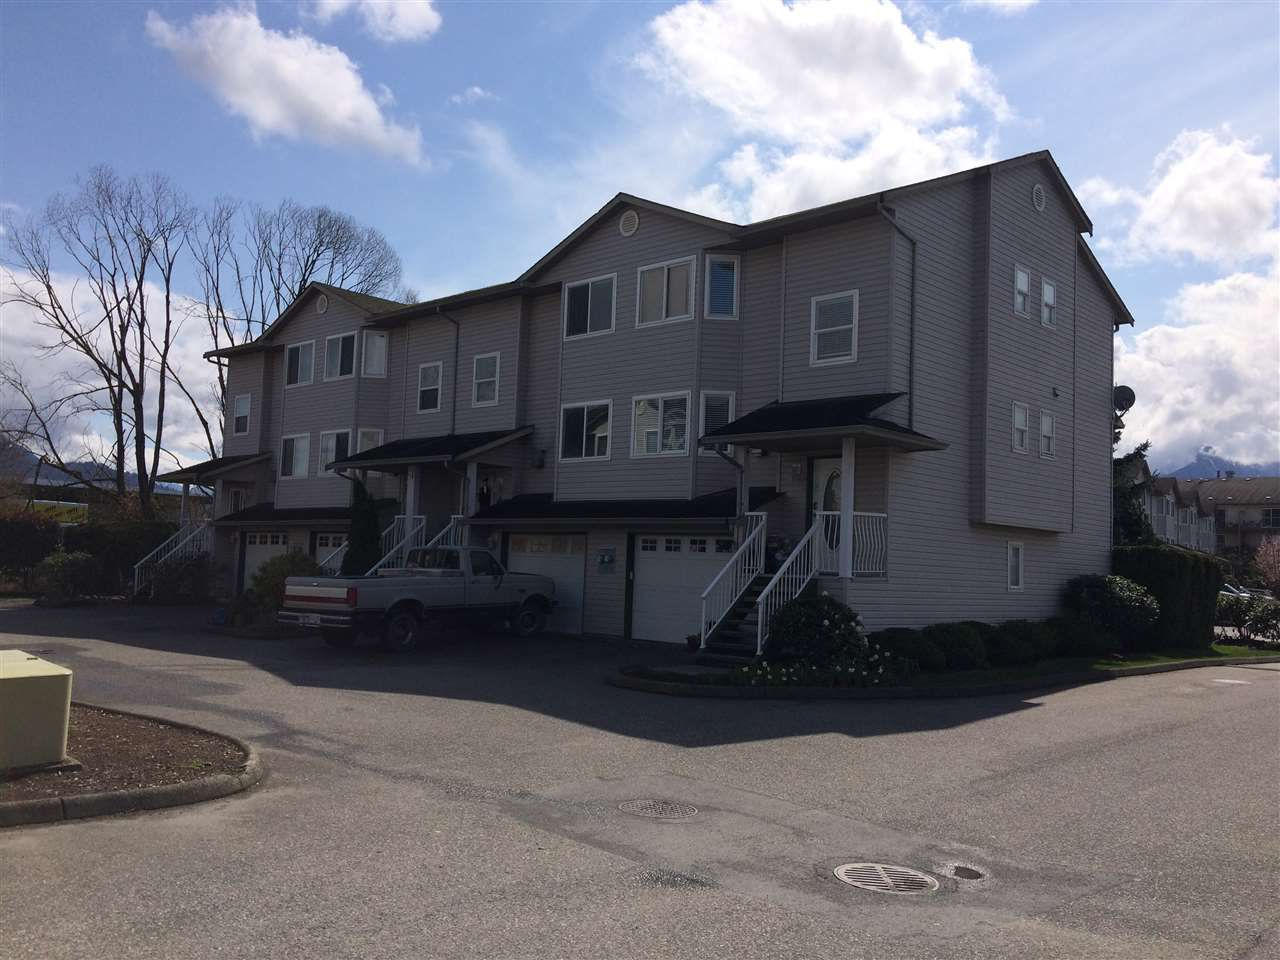 Main Photo: 6 45090 Luckakuck Way in Sardis: Sardis West Vedder Rd Townhouse for sale : MLS®# R2155160